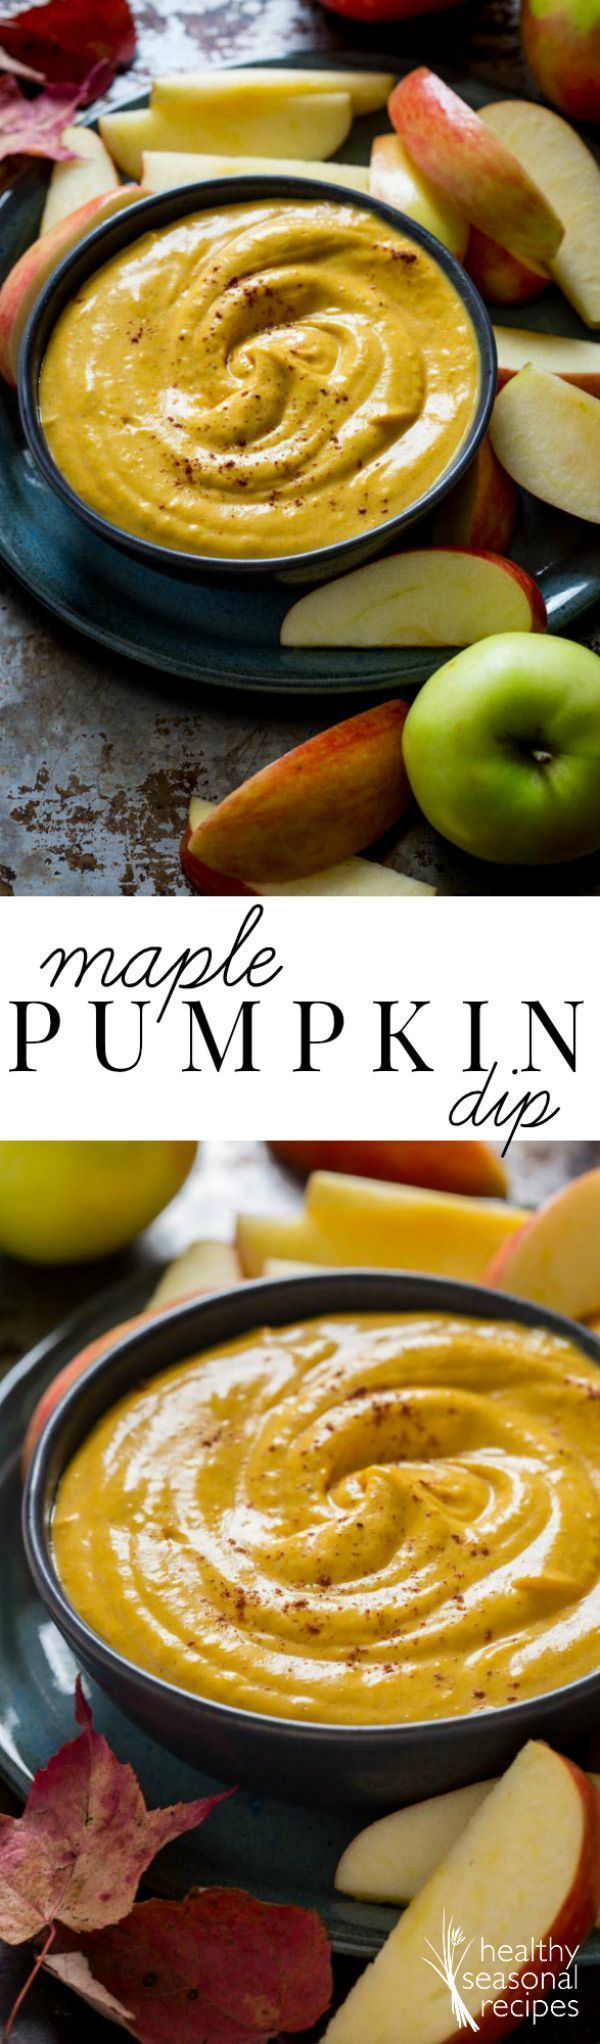 maple pumpkin pie dip